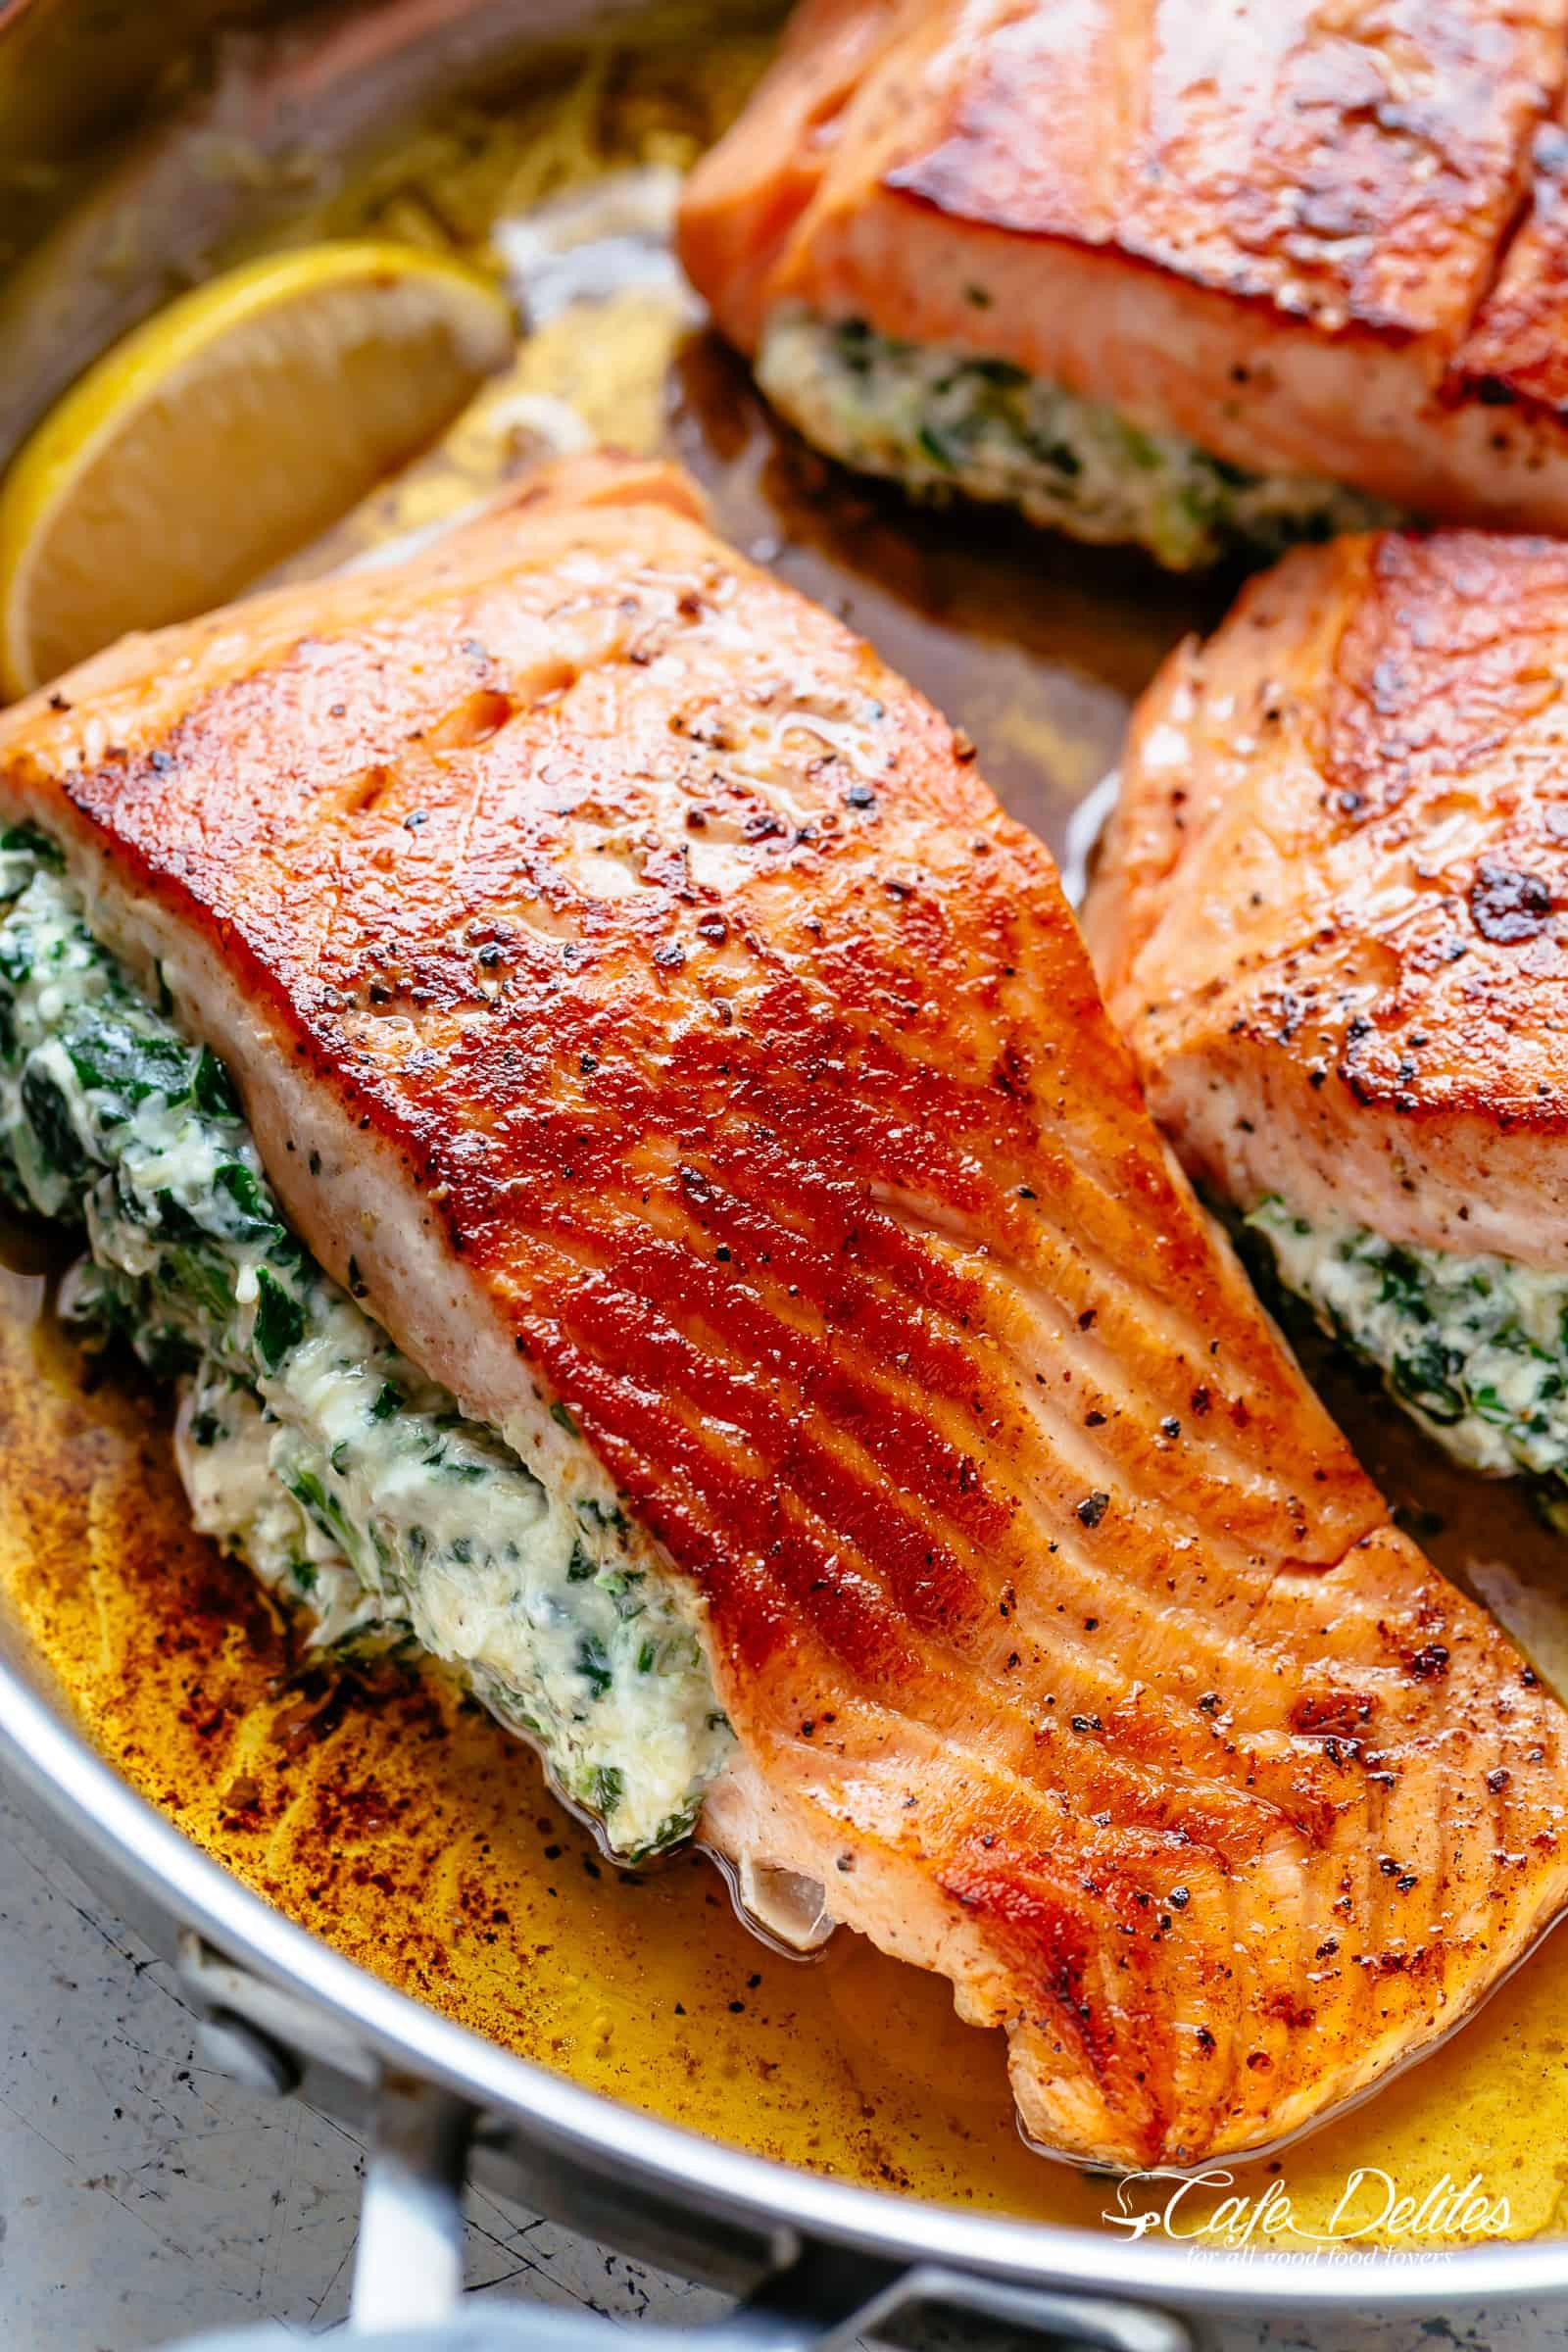 Low Cholesterol Salmon Recipes  BEST HEALTHY RECIPES Cafe Delites